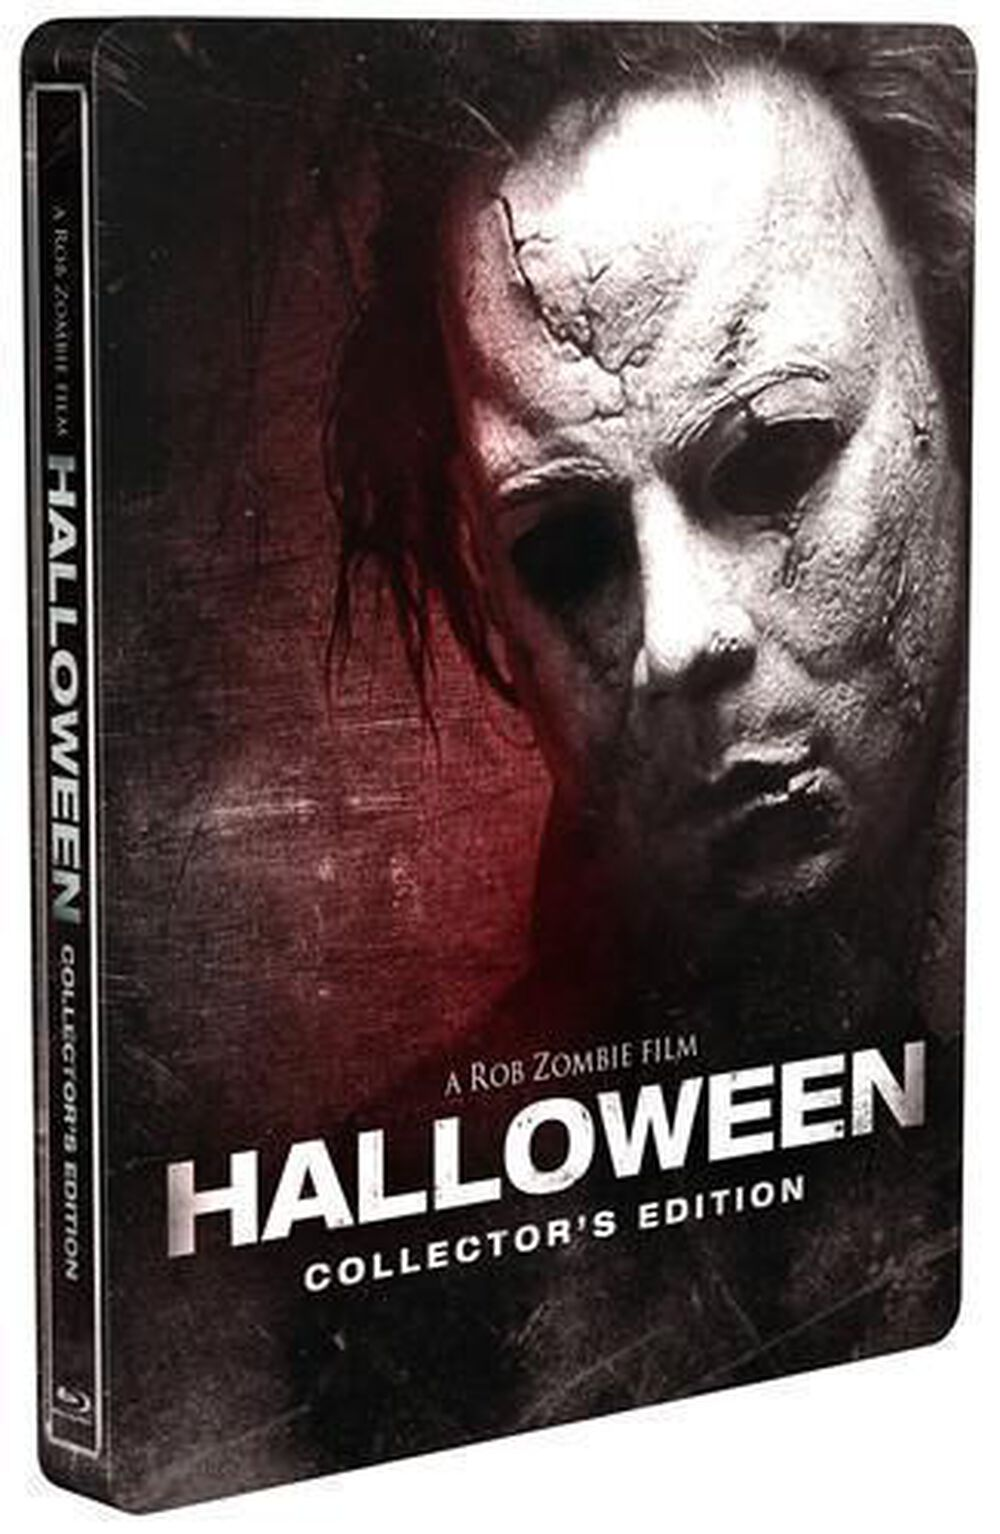 rob zombie's halloween [collector's edition blu-ray steelbook] - new